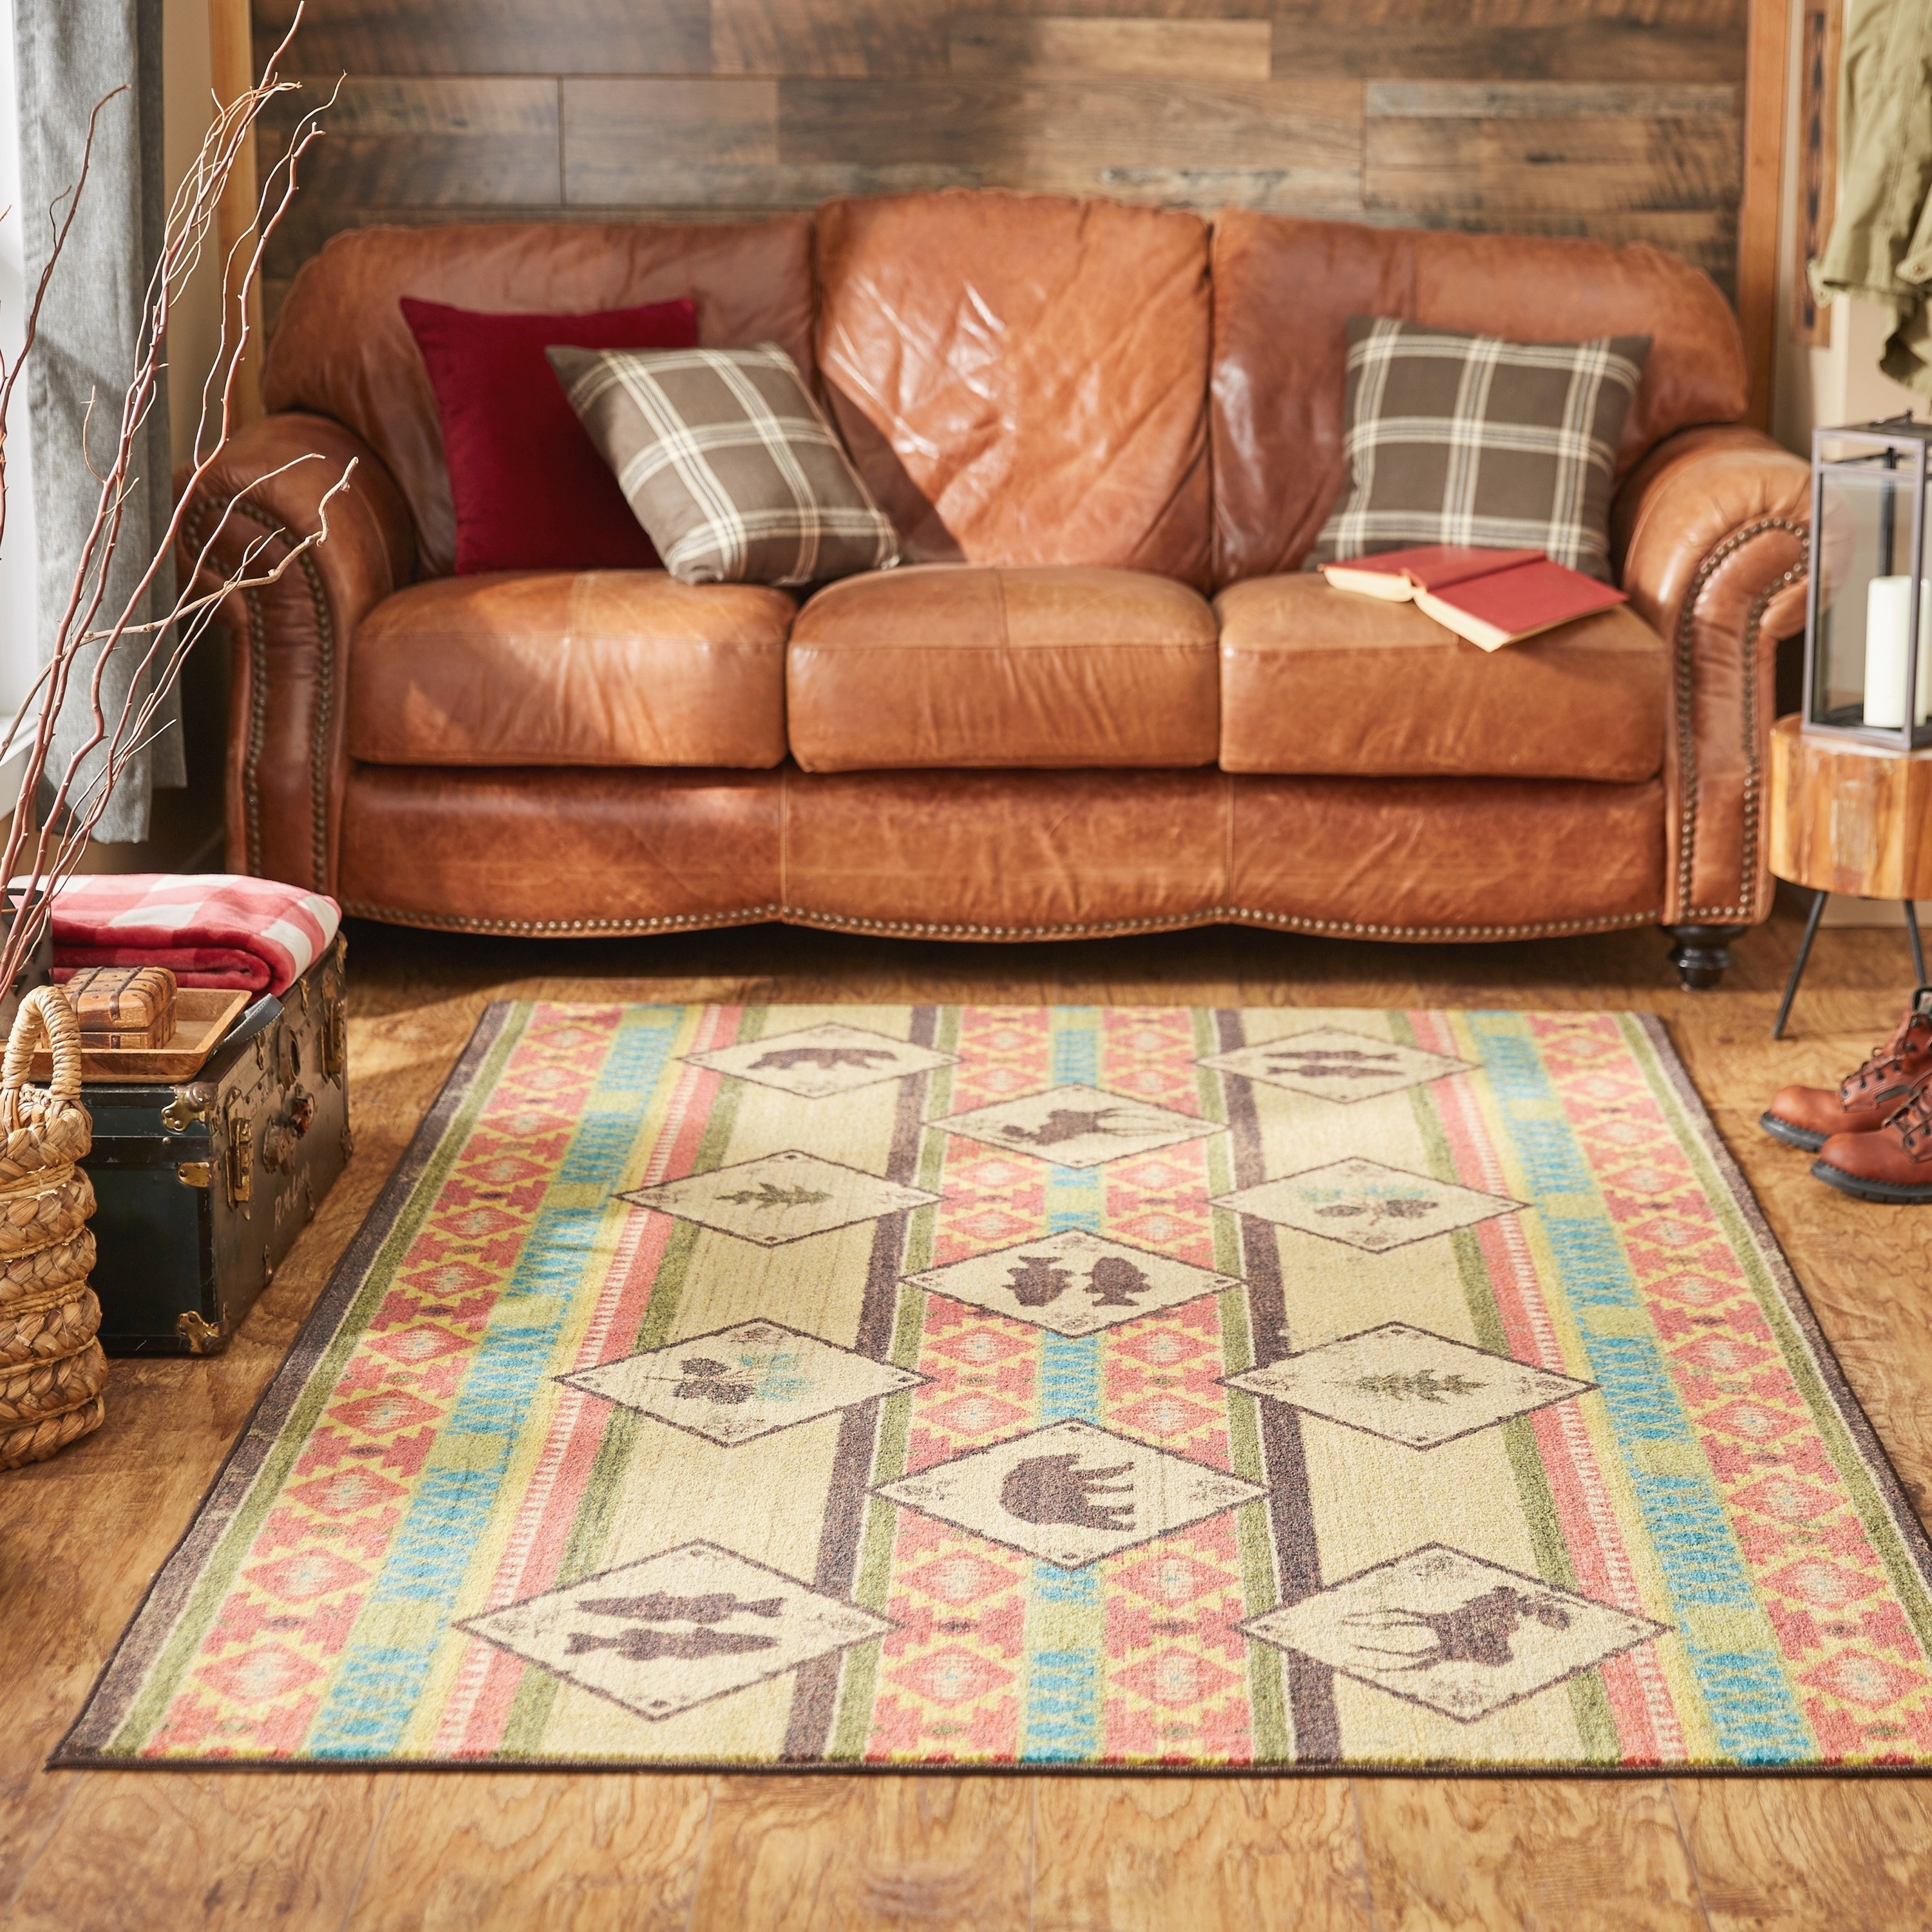 kitchen mats for hardwood floors of area rugs 10a—14 best of area rugs for hardwood floors best jute rugs pertaining to new design spectacular mohawk area rugs 8x10 mohawk area kitchen